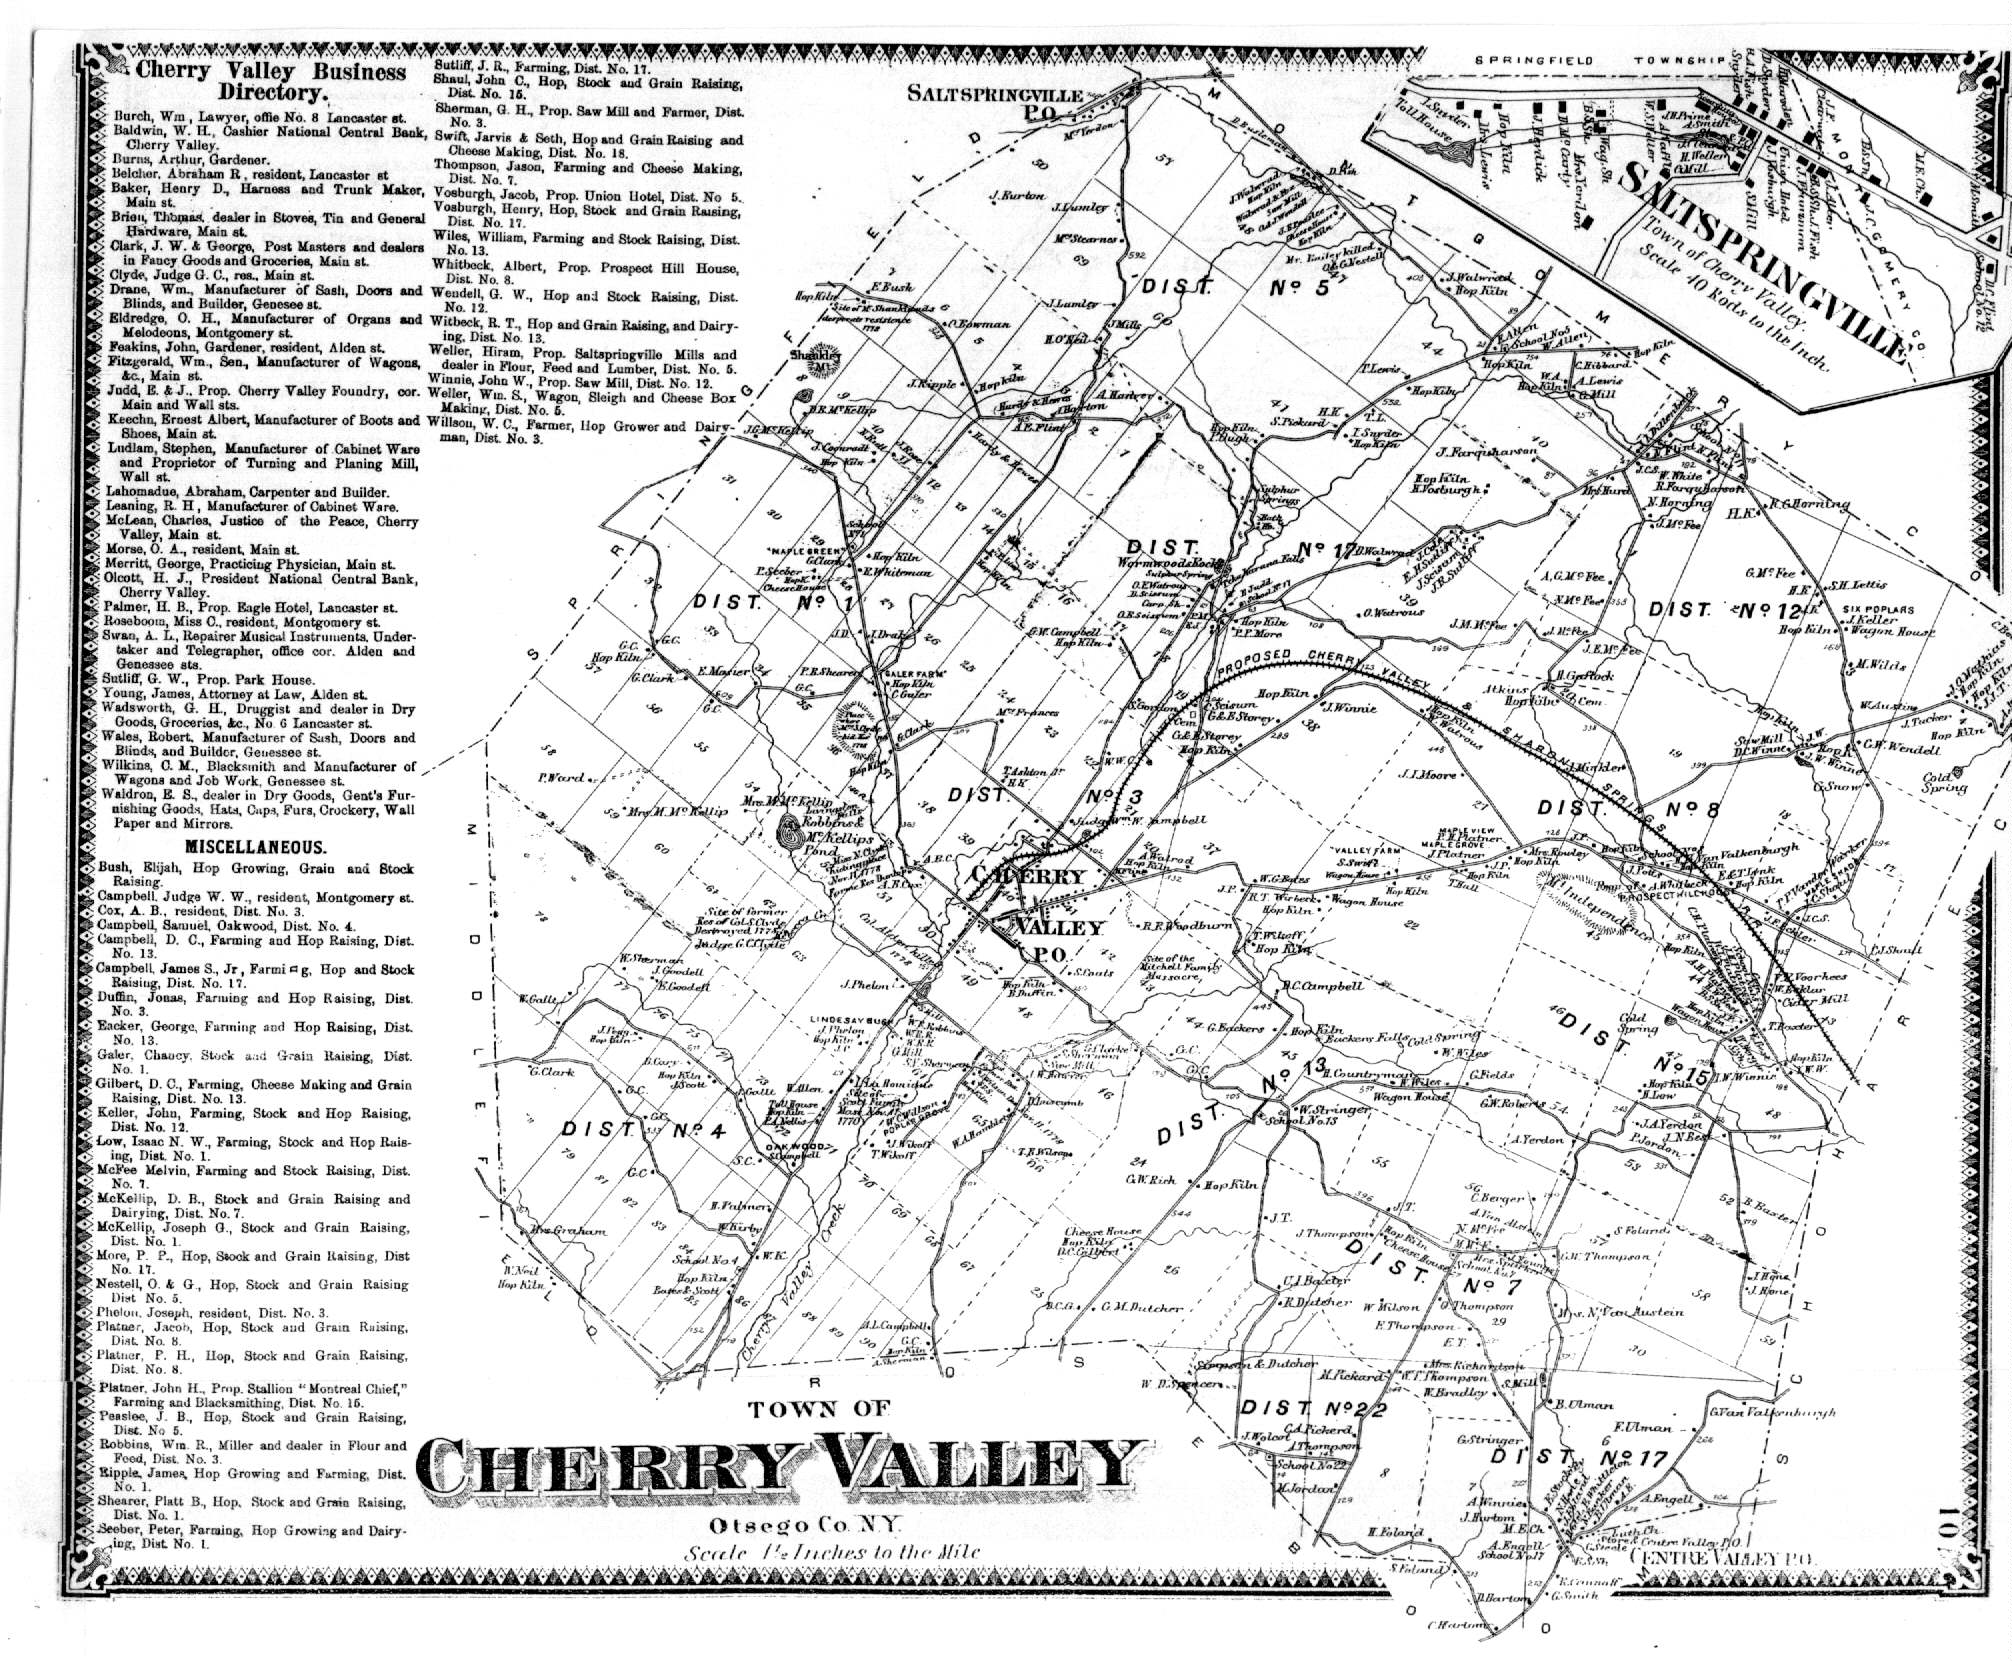 Town of cherry valley